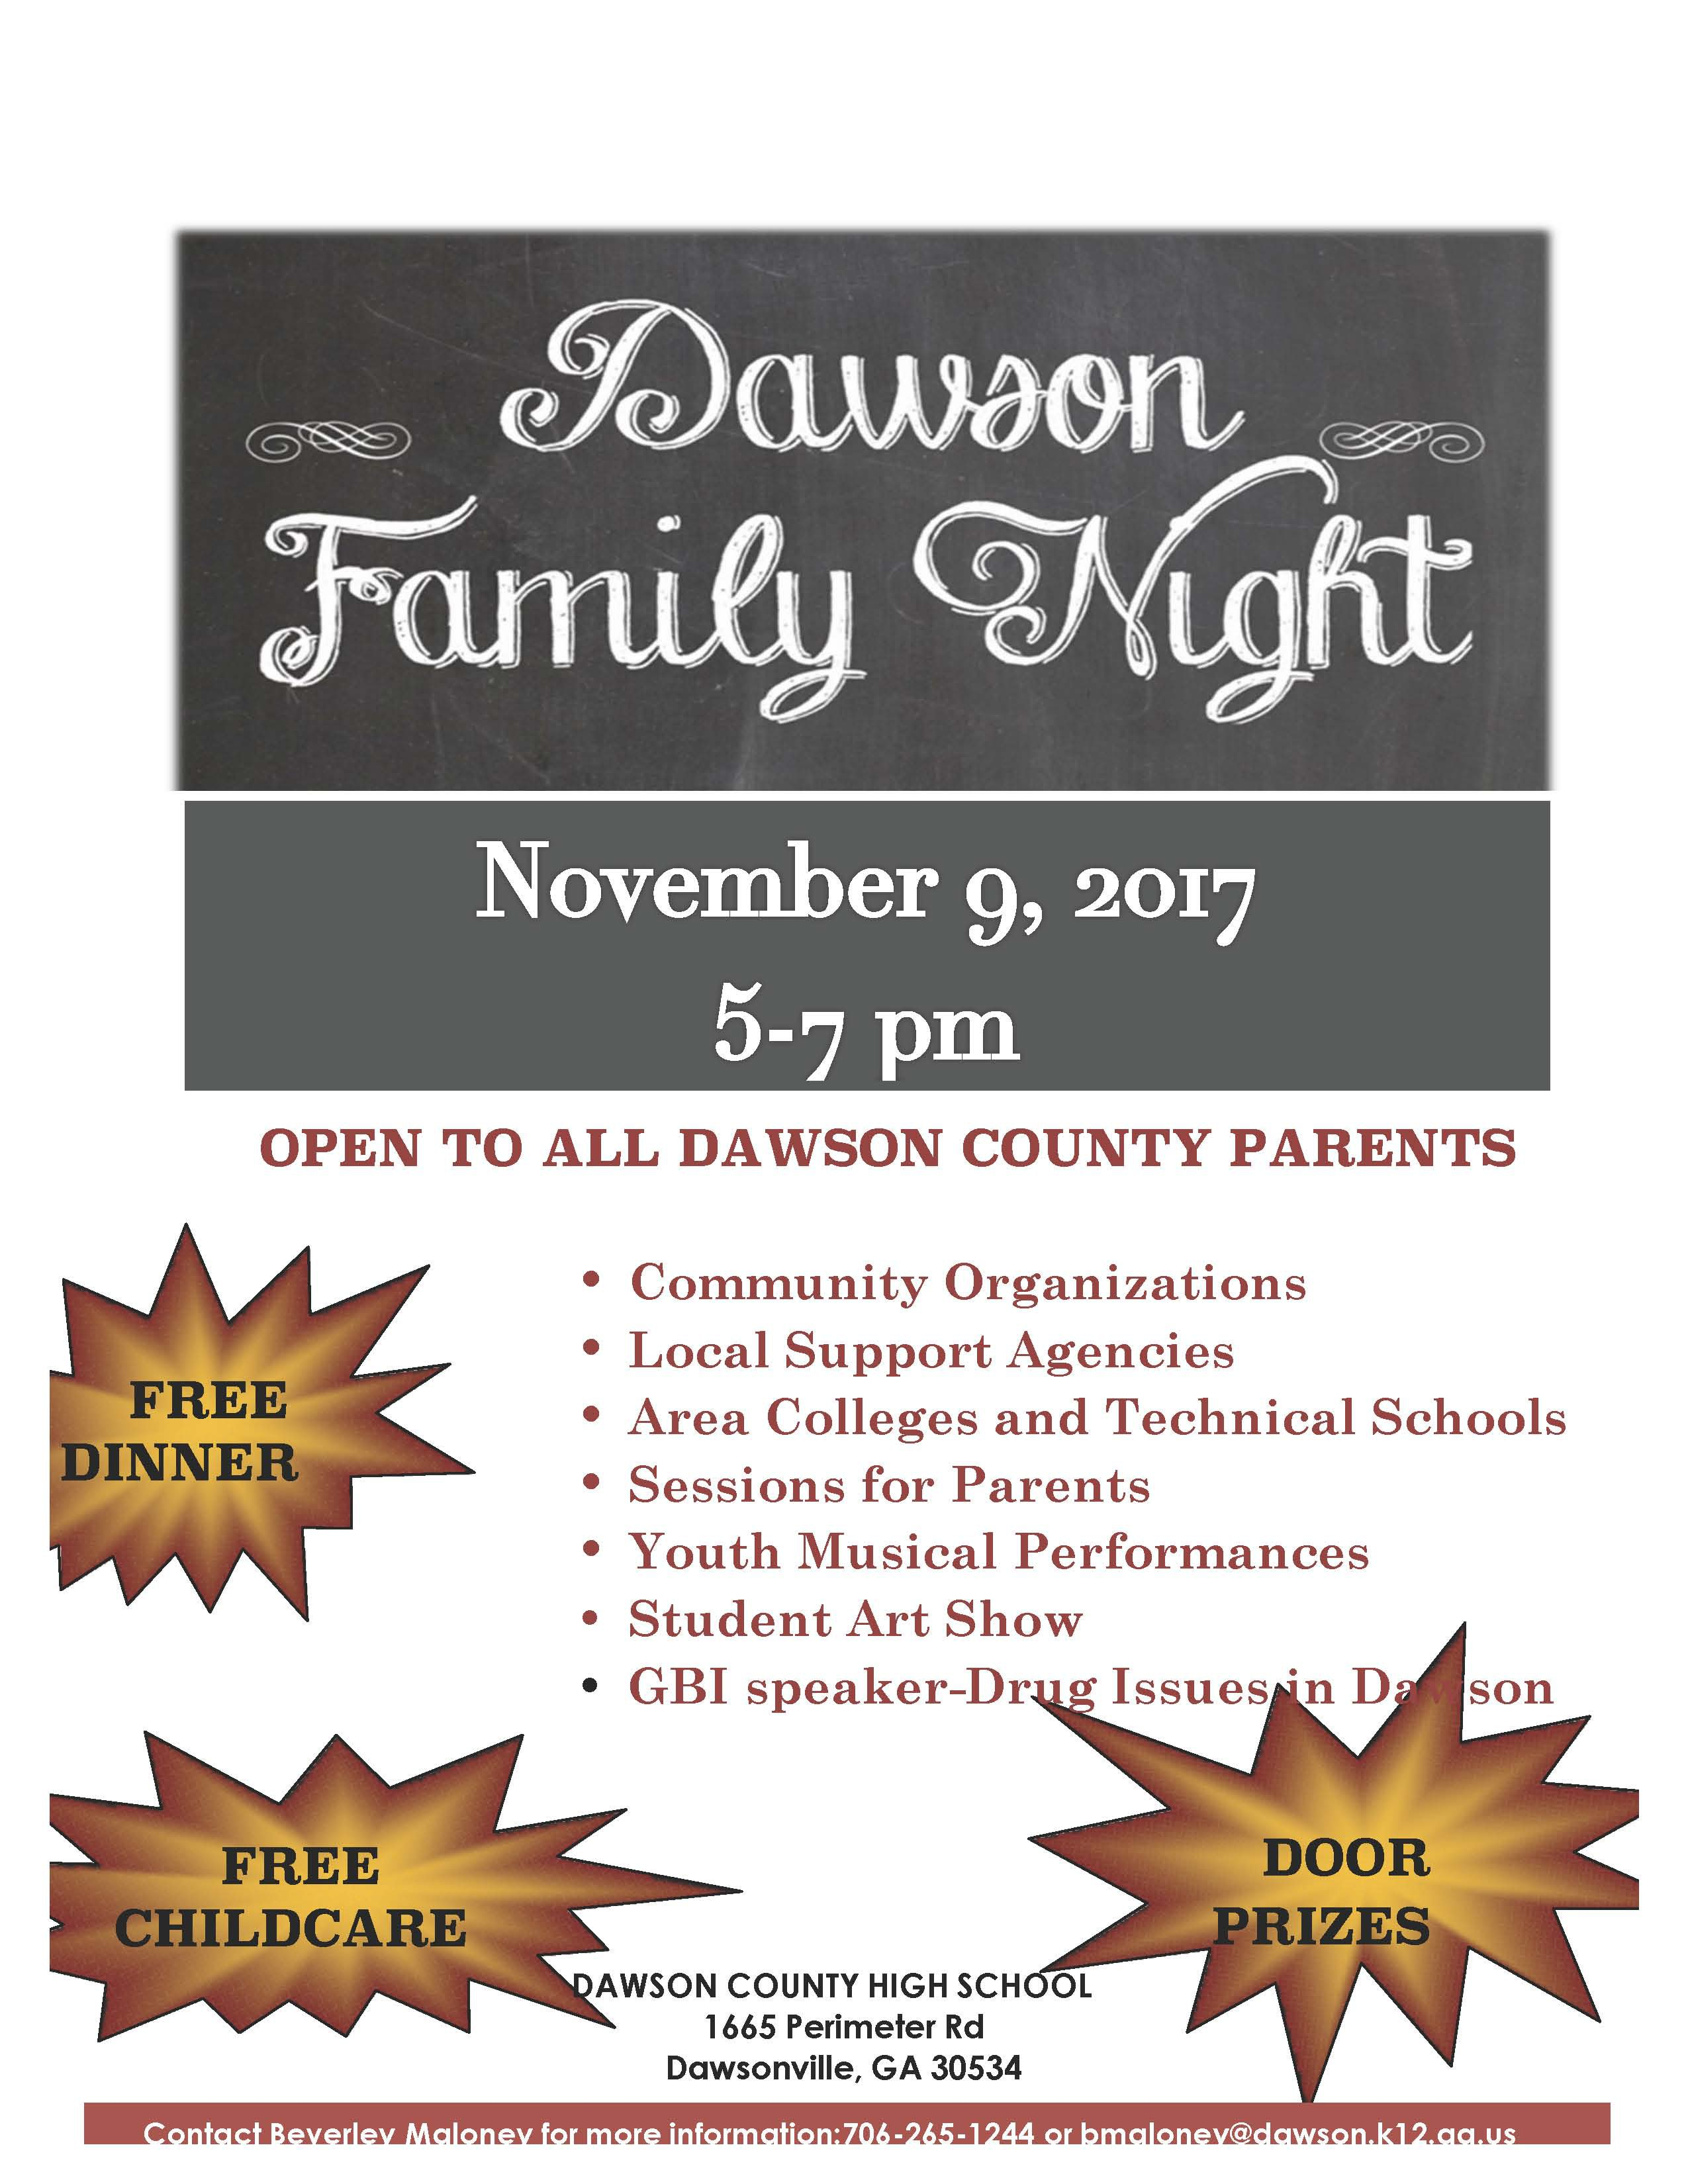 DCS Family Night